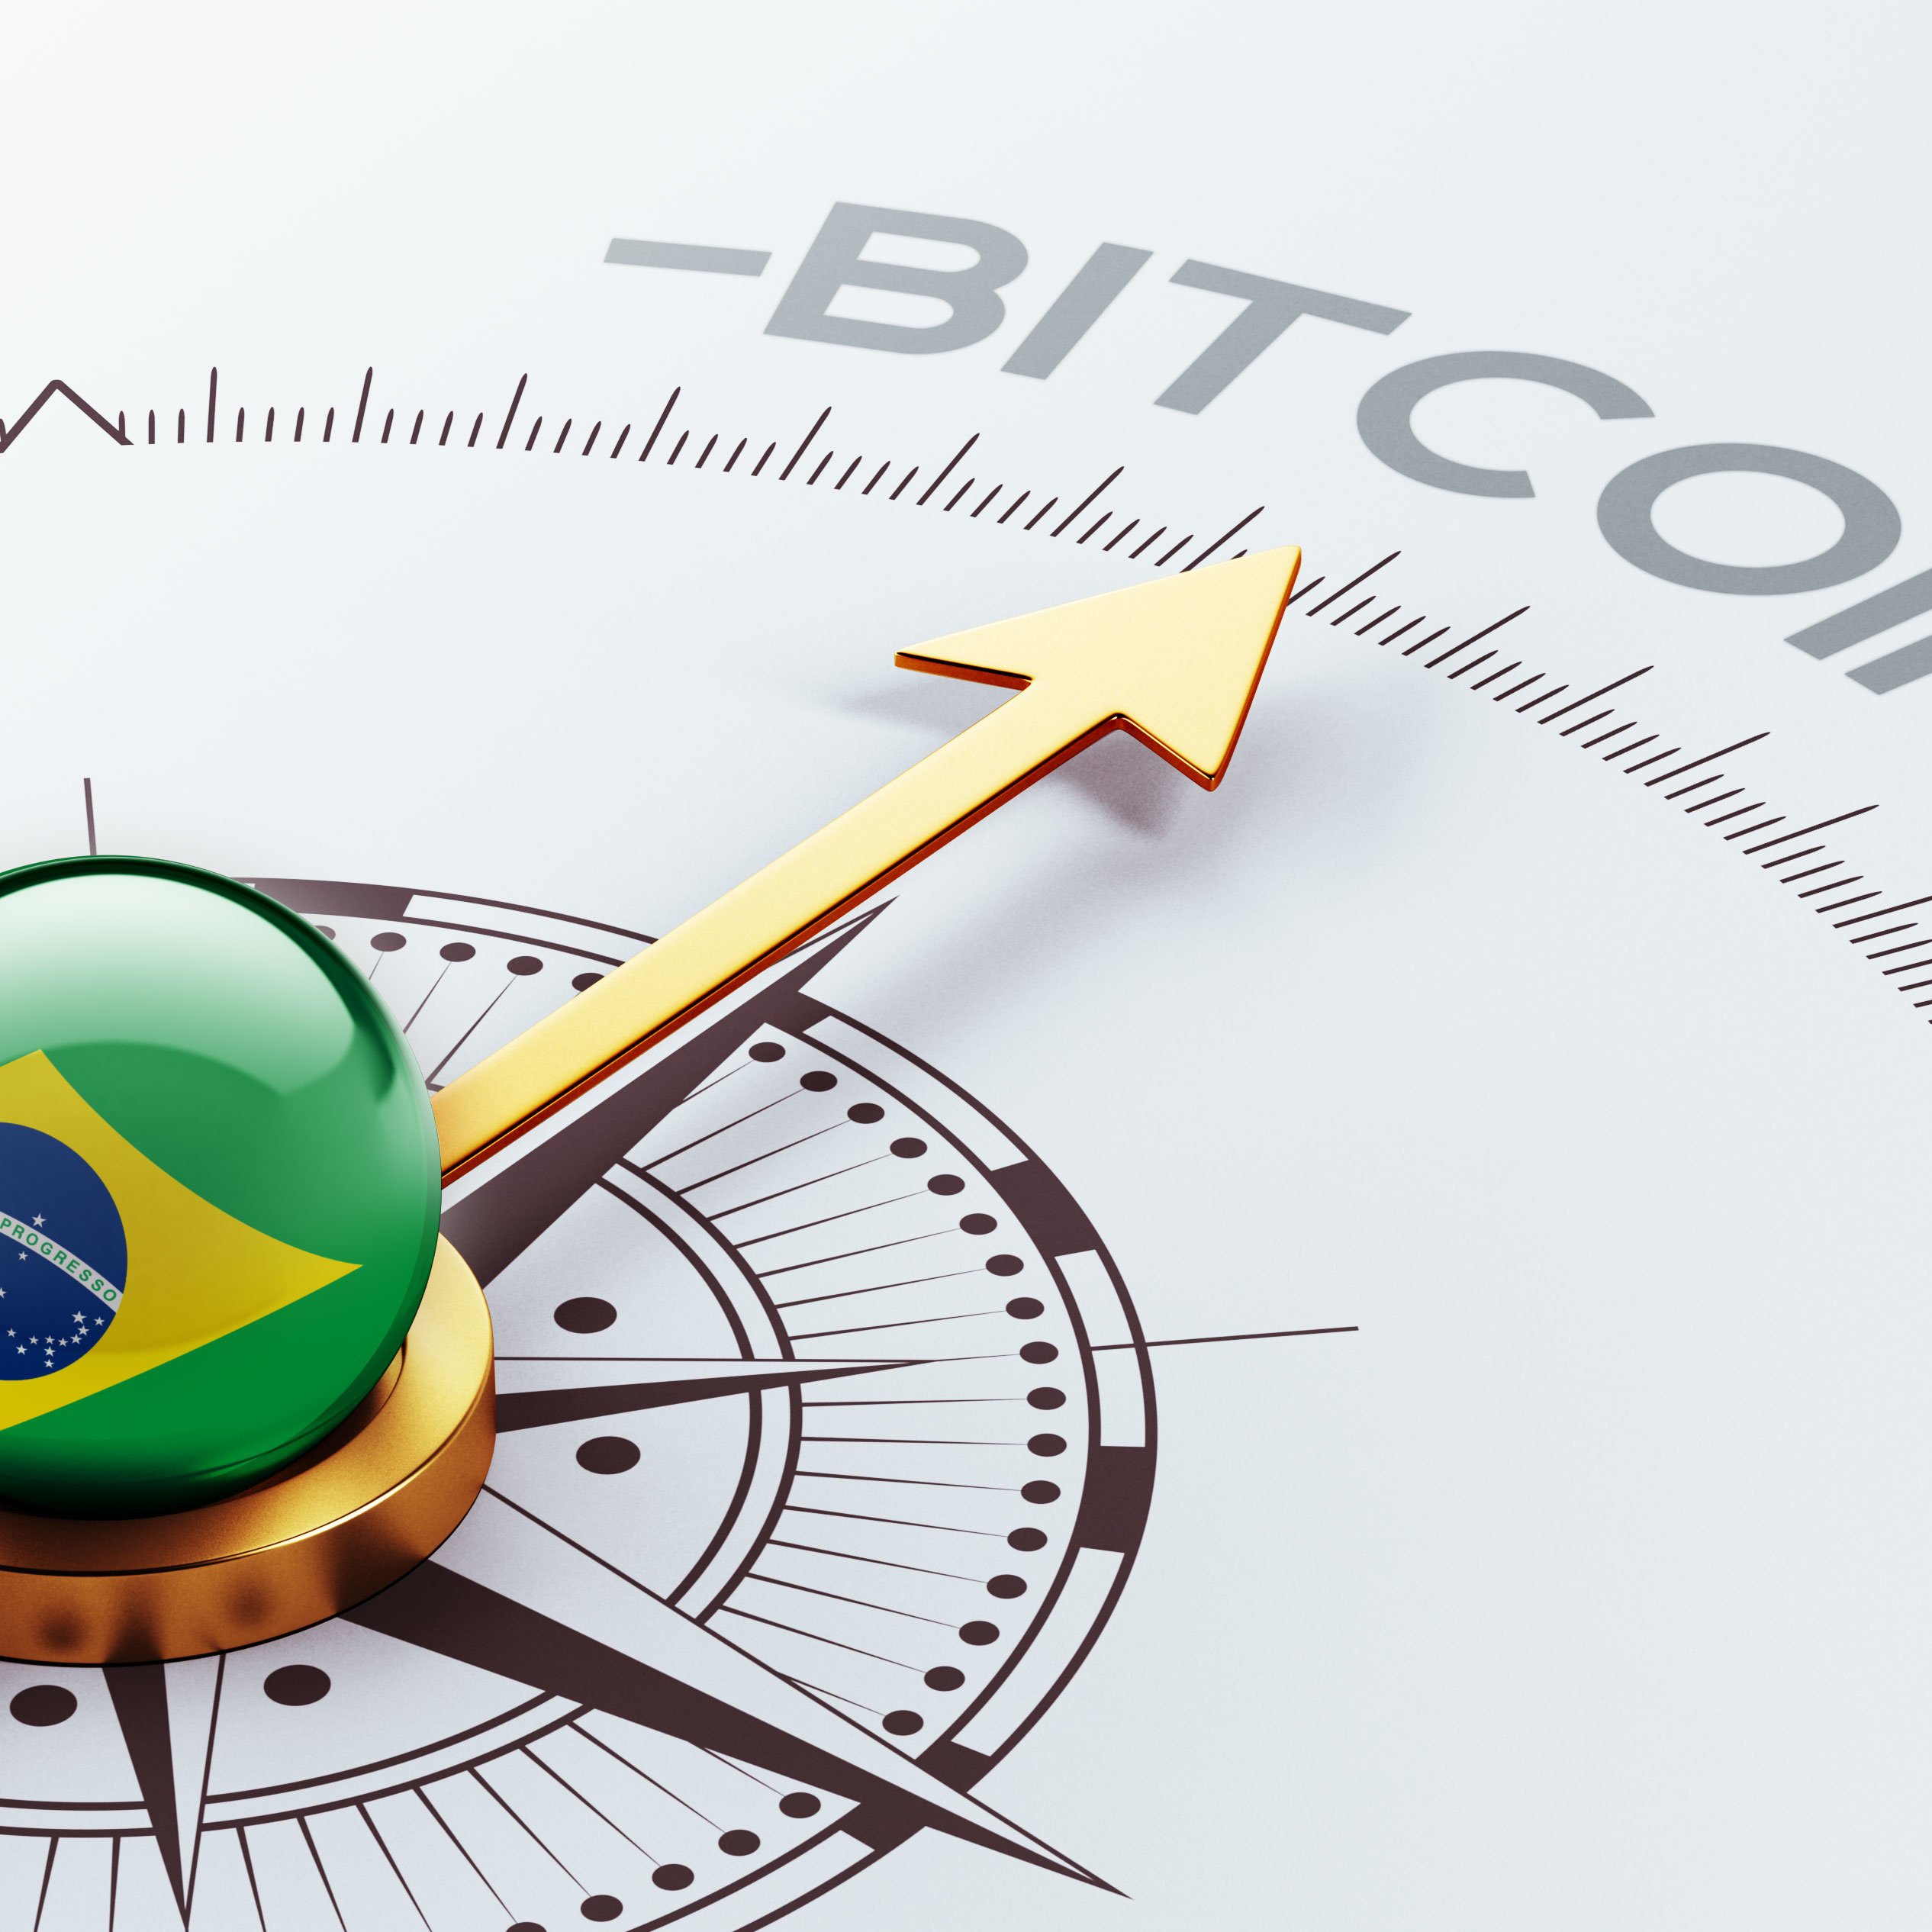 Brazil High Resolution Bitcoin Concept